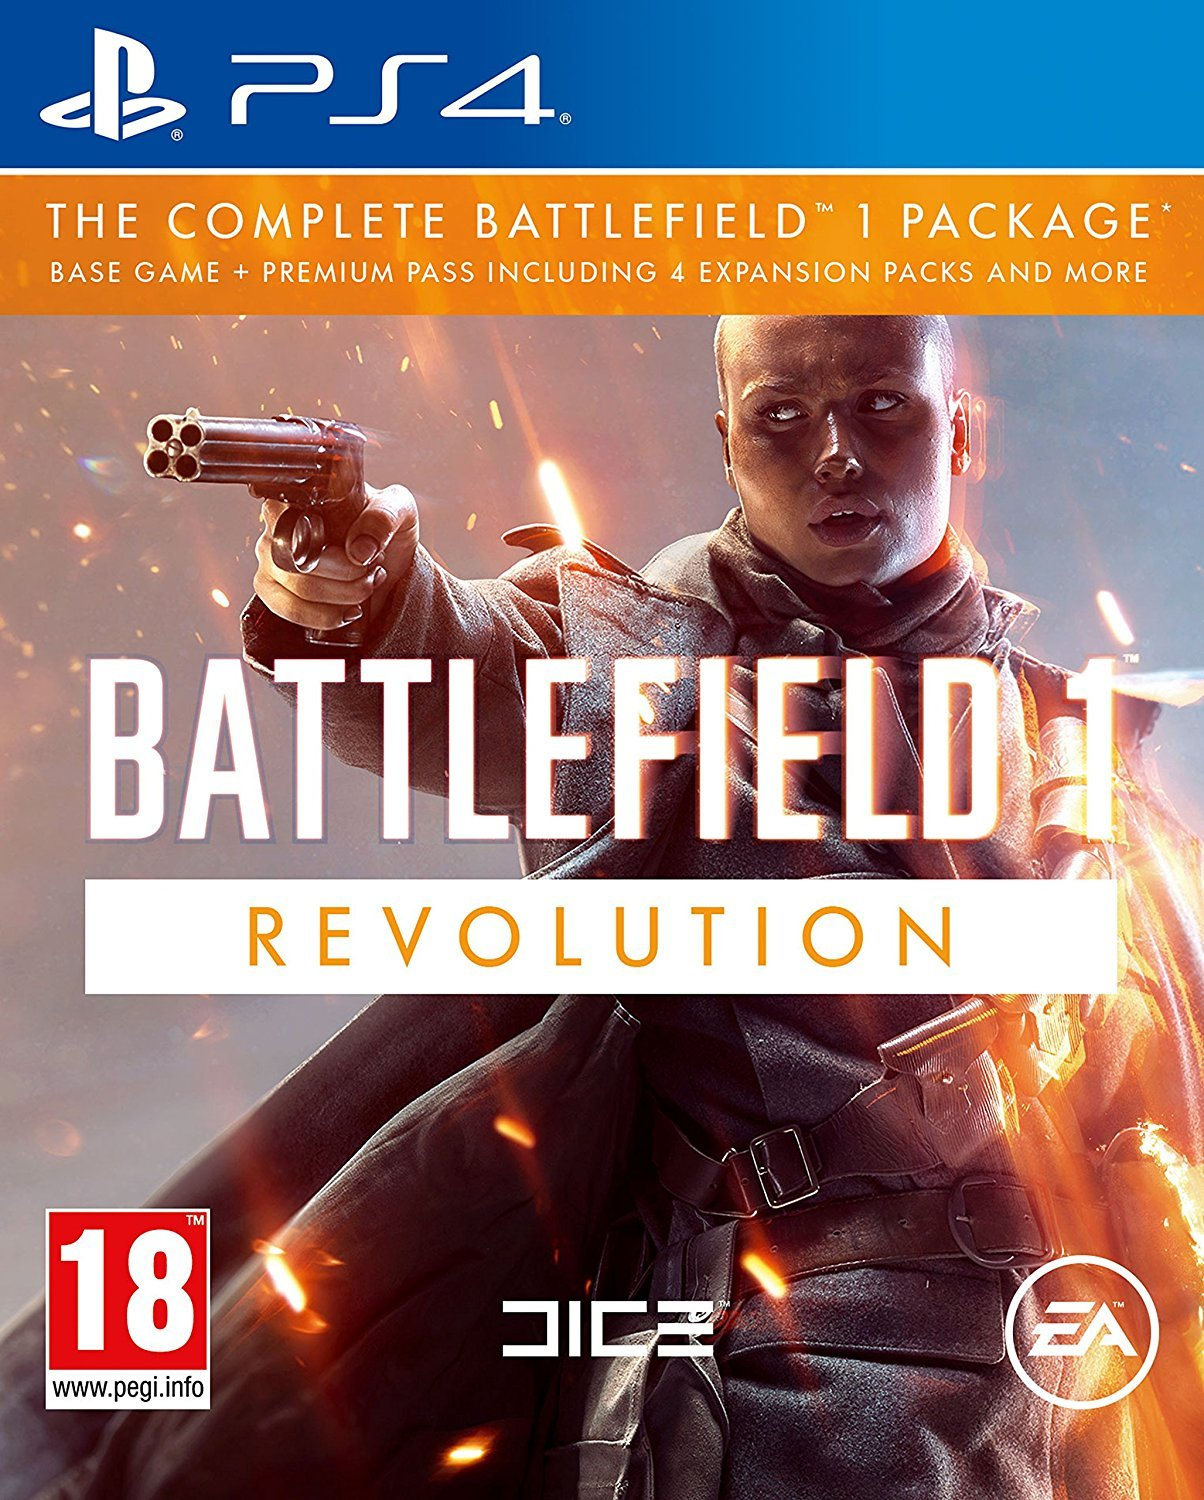 Battlefield 1 Revolution Edition for PS4 image